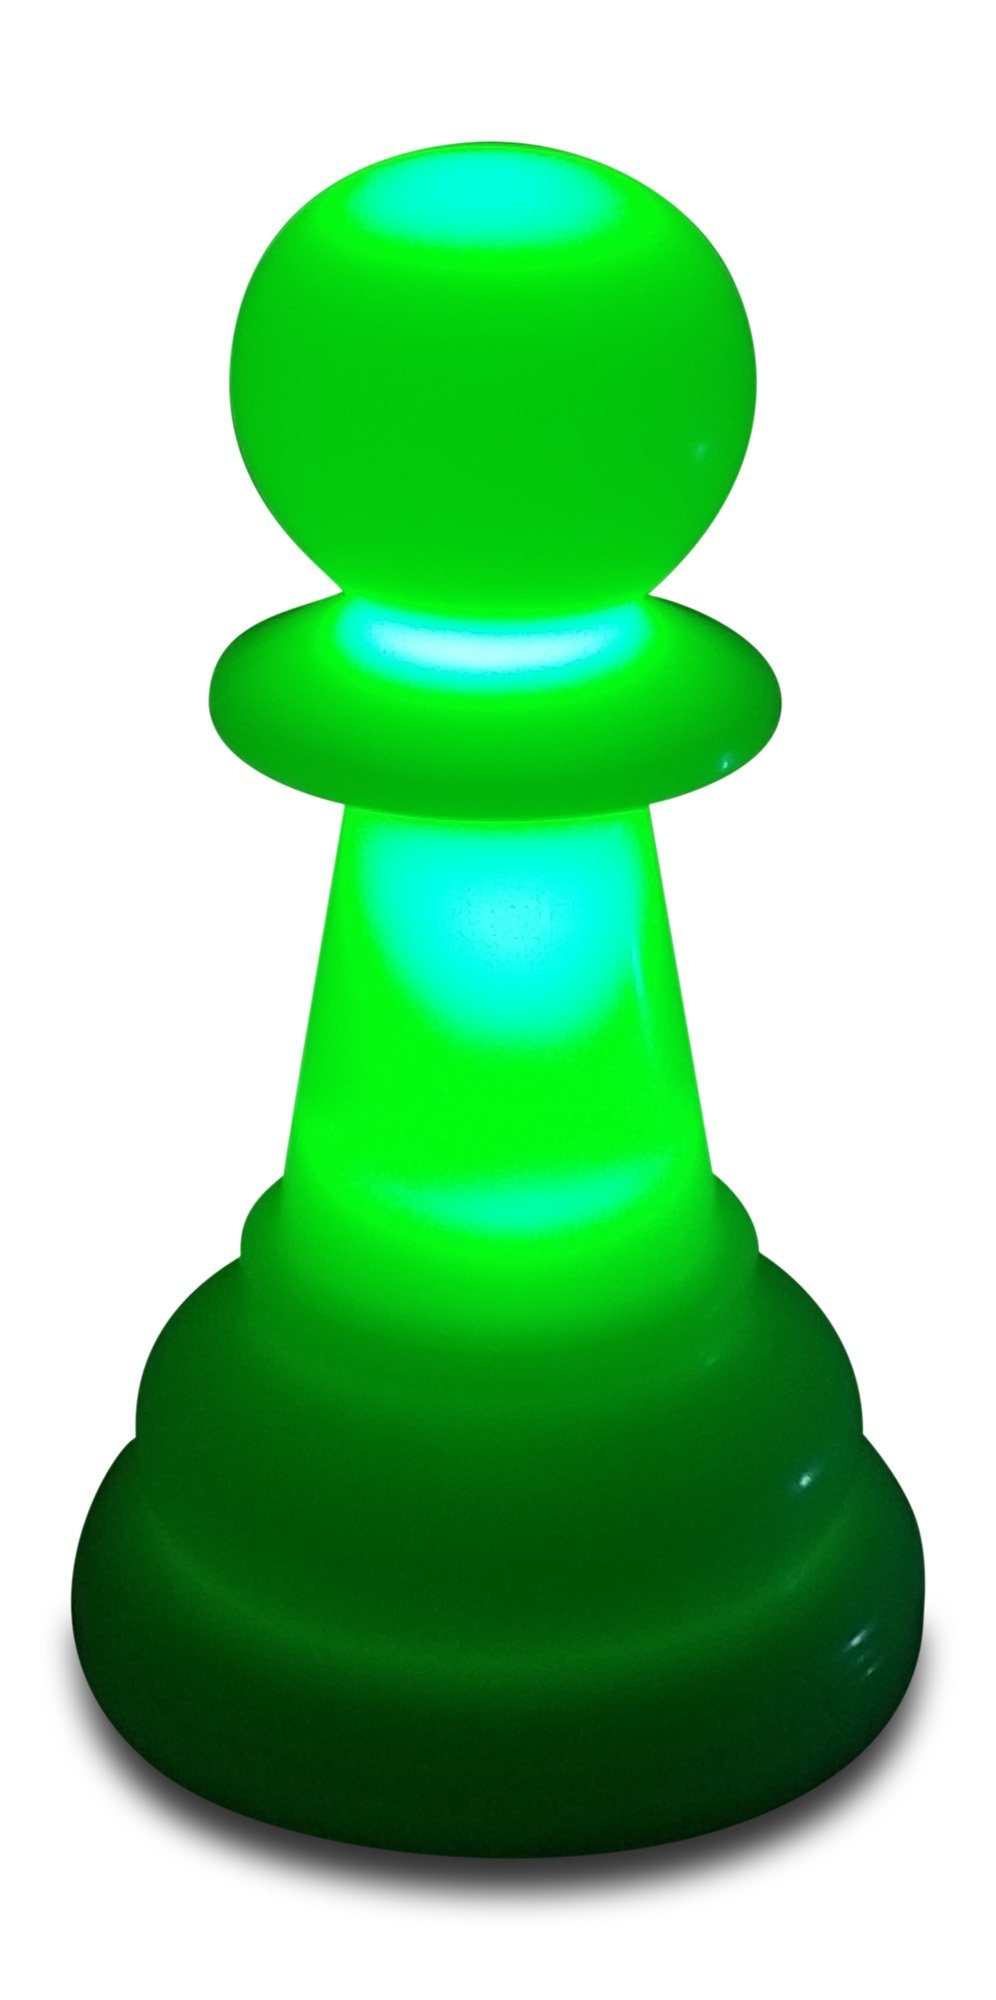 MegaChess 16 Inch Premium Plastic Pawn Light-Up Giant Chess Piece - Green | Default Title | MegaChess.com